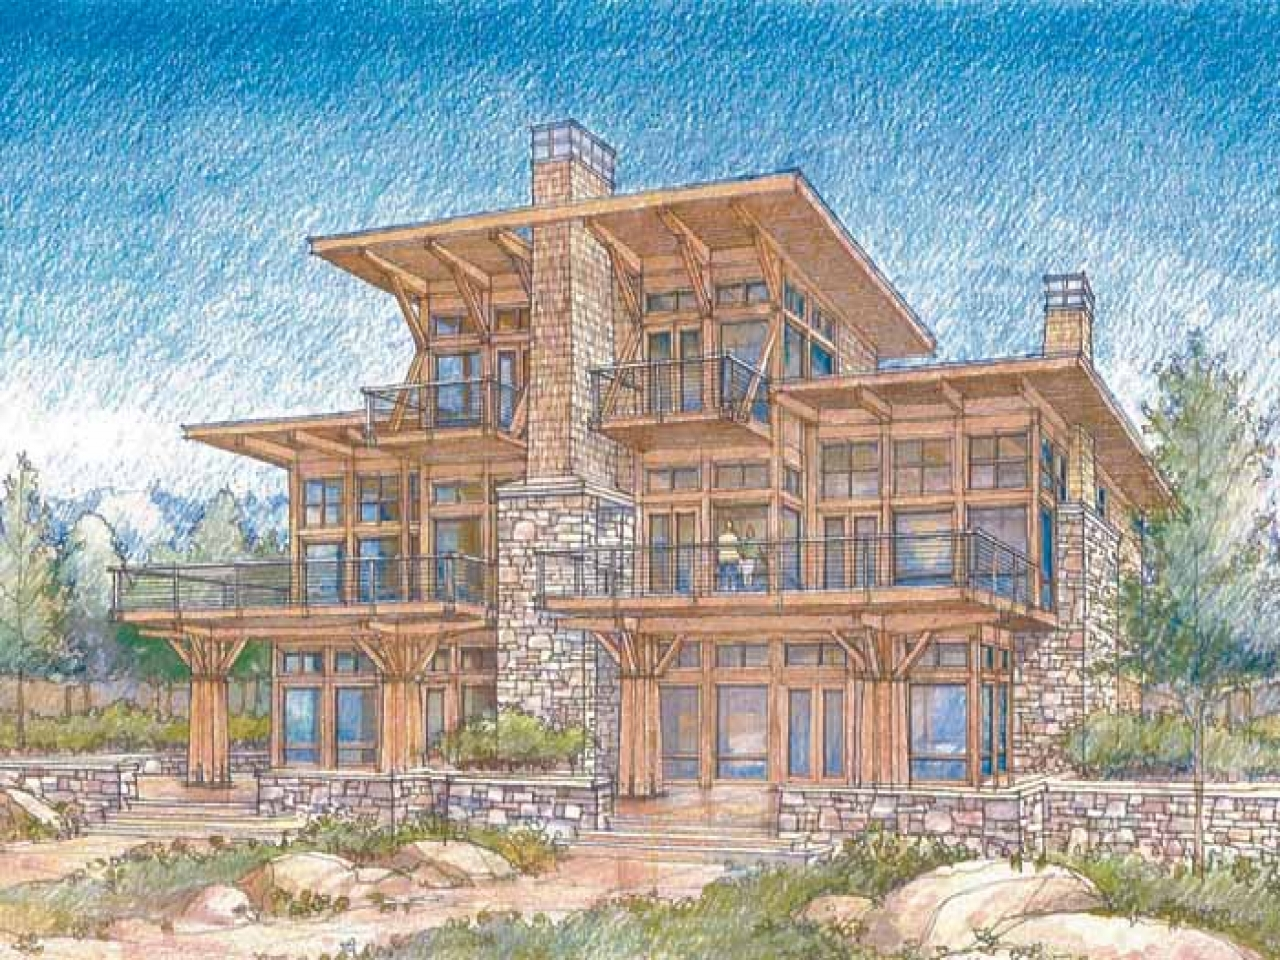 Waterfront luxury home plans modern waterfront house plans for Modern waterfront house plans